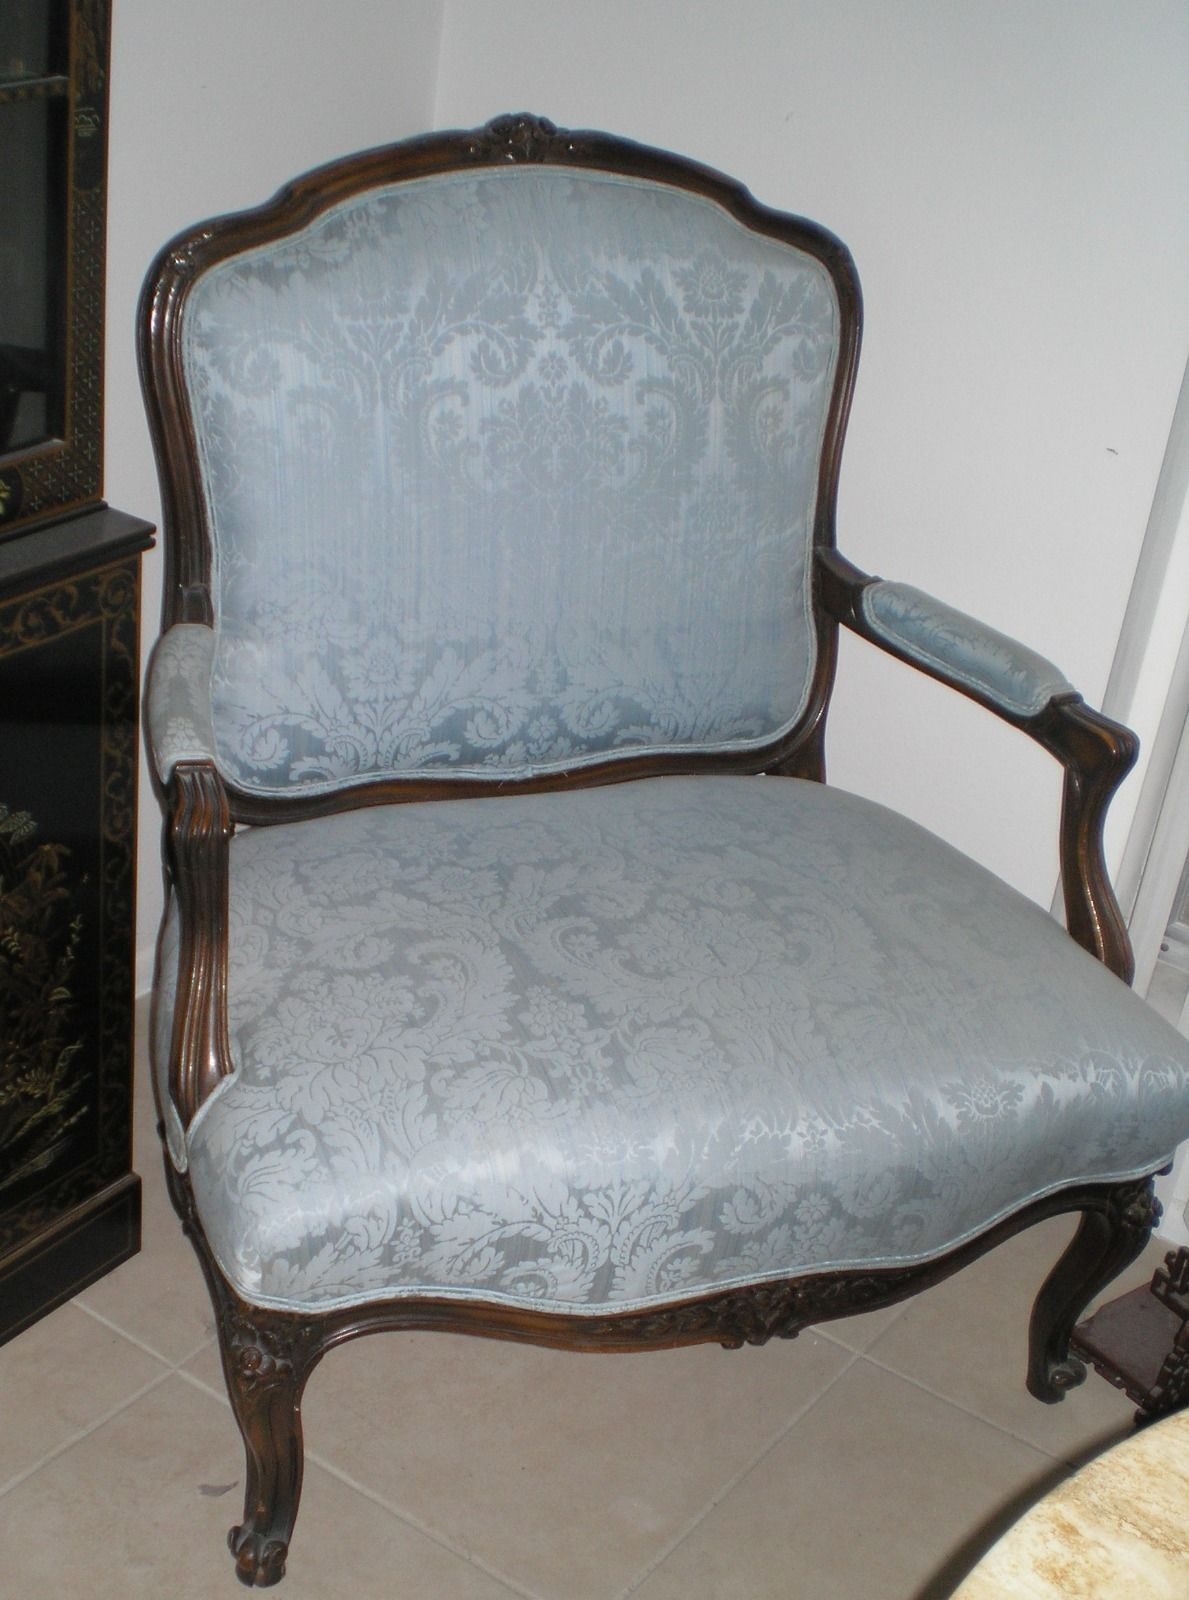 Gingham White And Blue Period Superior Materials Reproduction Chairs Confident 6 Beautiful Ancient Chairs French Lacquered